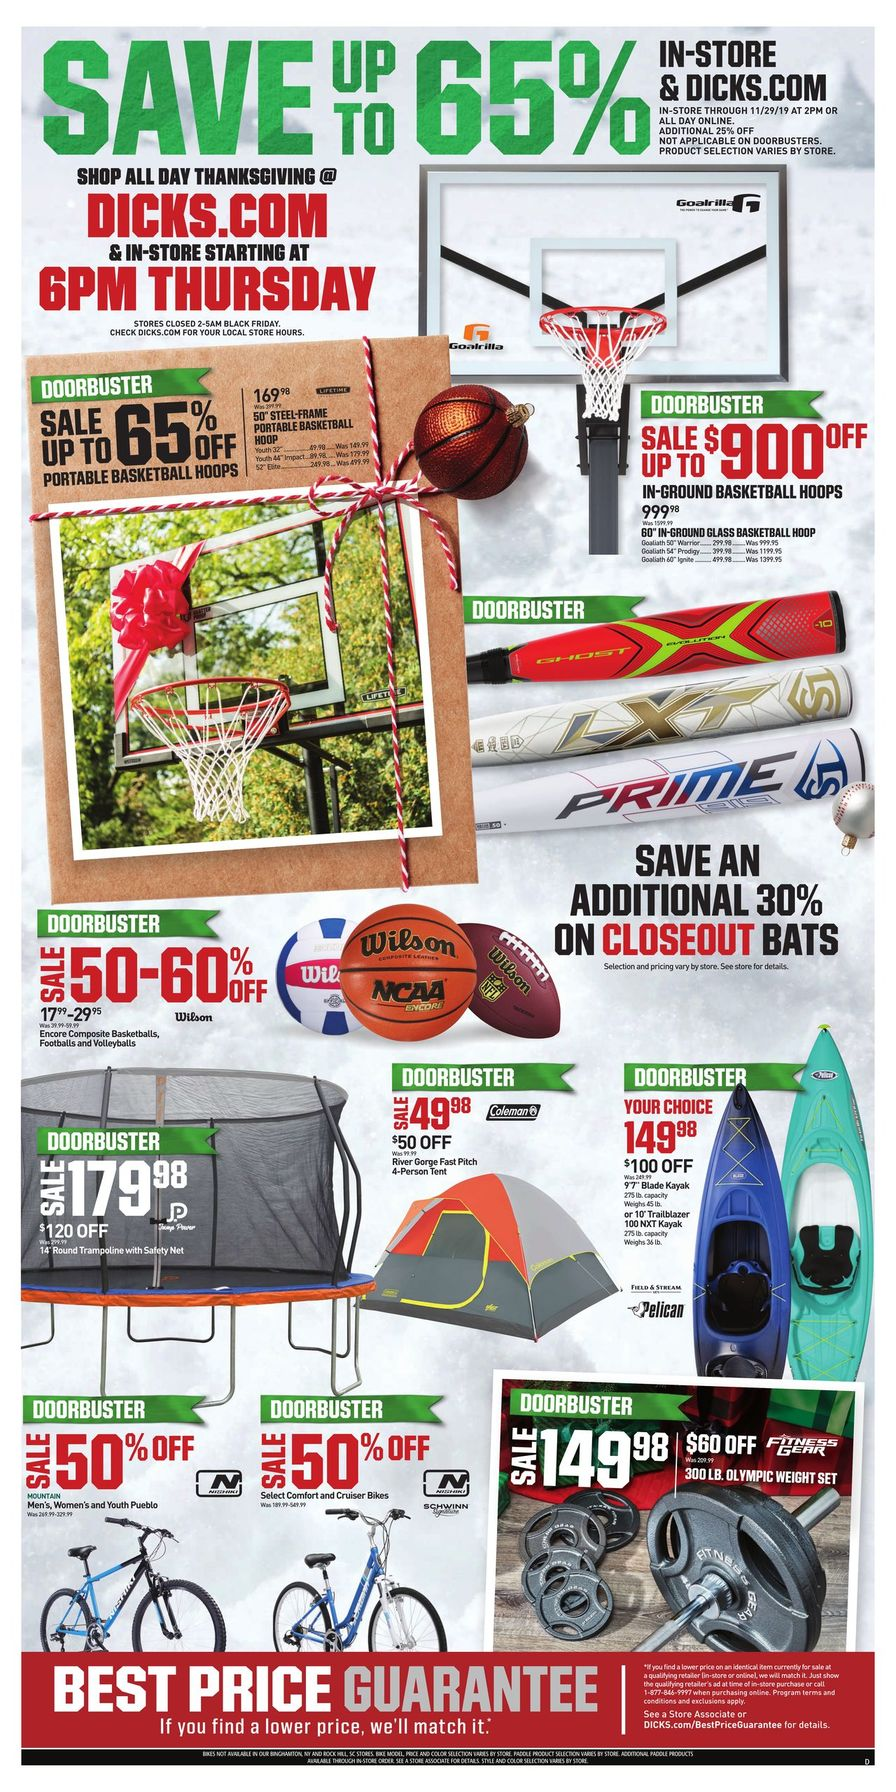 Dick's Sporting Goods Black Friday 2019 Page 3